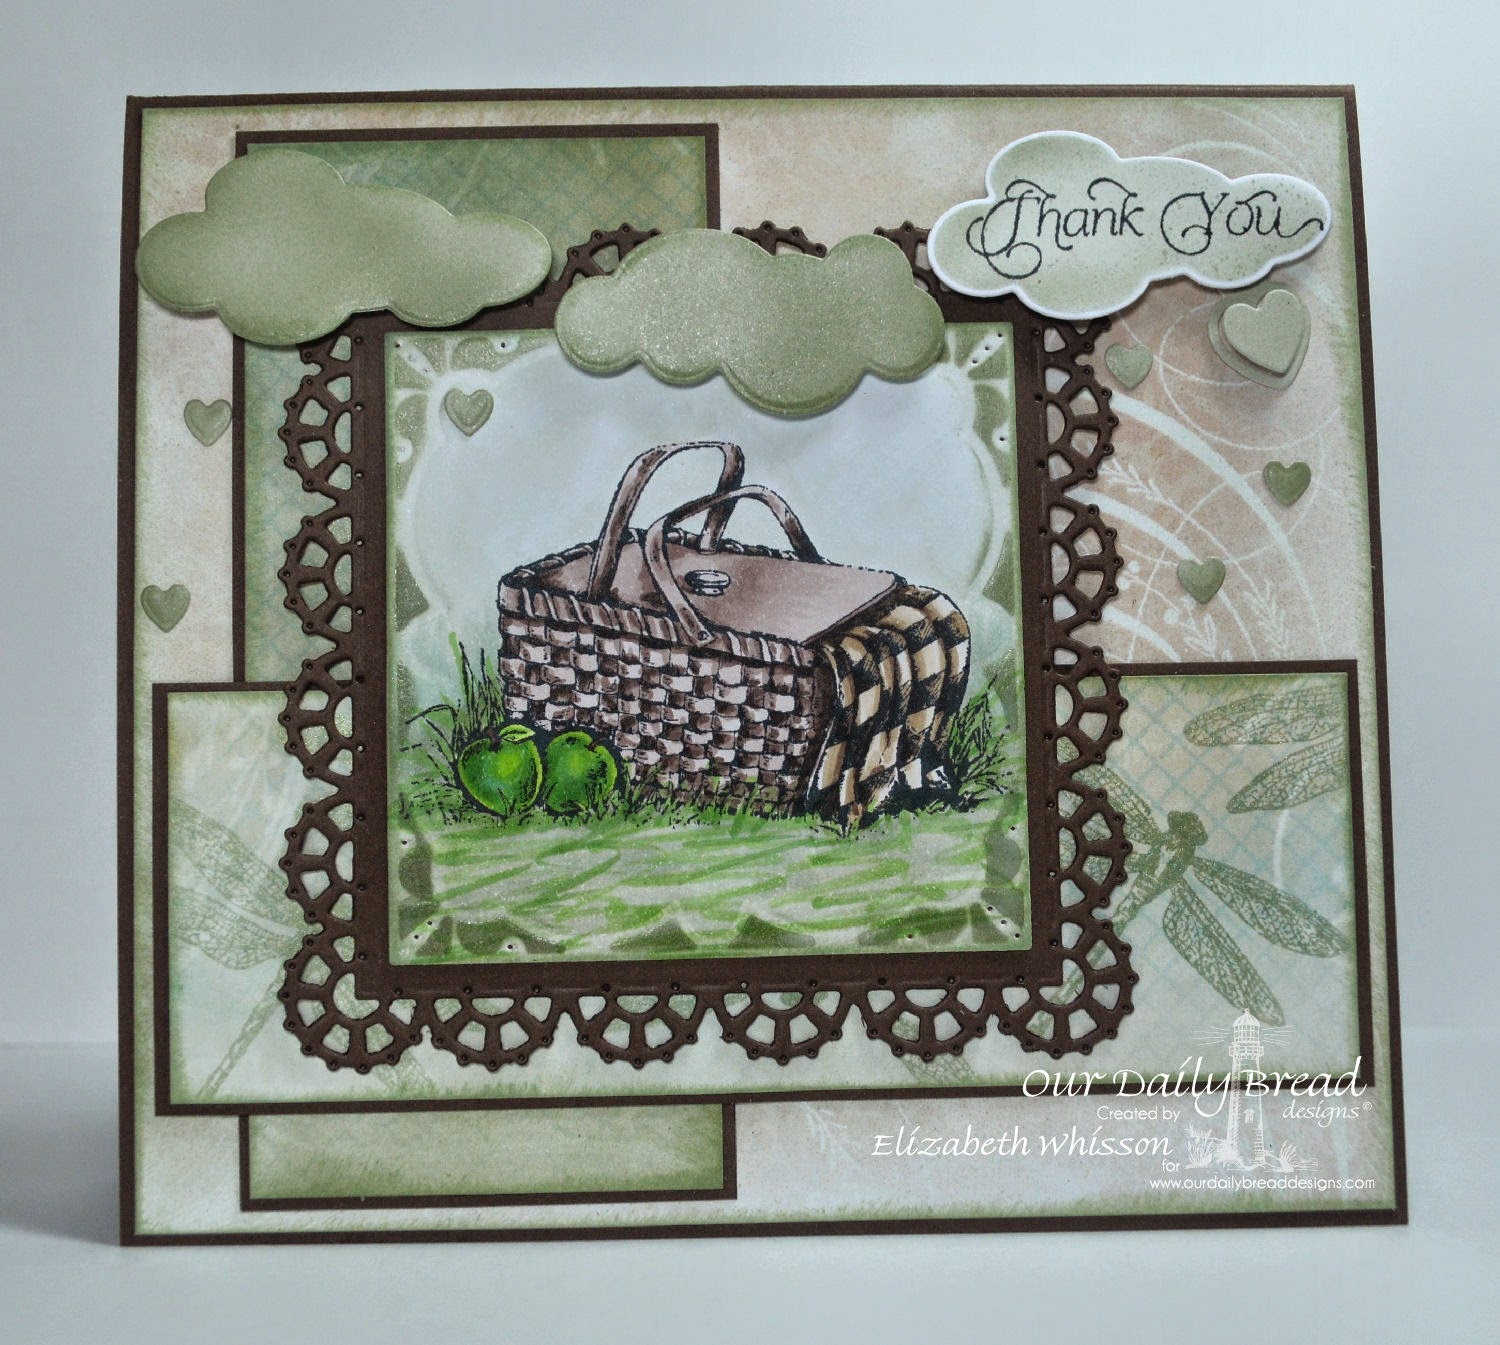 Our Daily Bread Designs, Thank you, Dragonfly Mini, ODBD Layered Lacey Squares Dies, ODBD Clouds and Raindrops Dies, ODBD Mini Tags Dies, ODBD Shabby Rose Paper Collection, Designed by Elizabeth Whisson